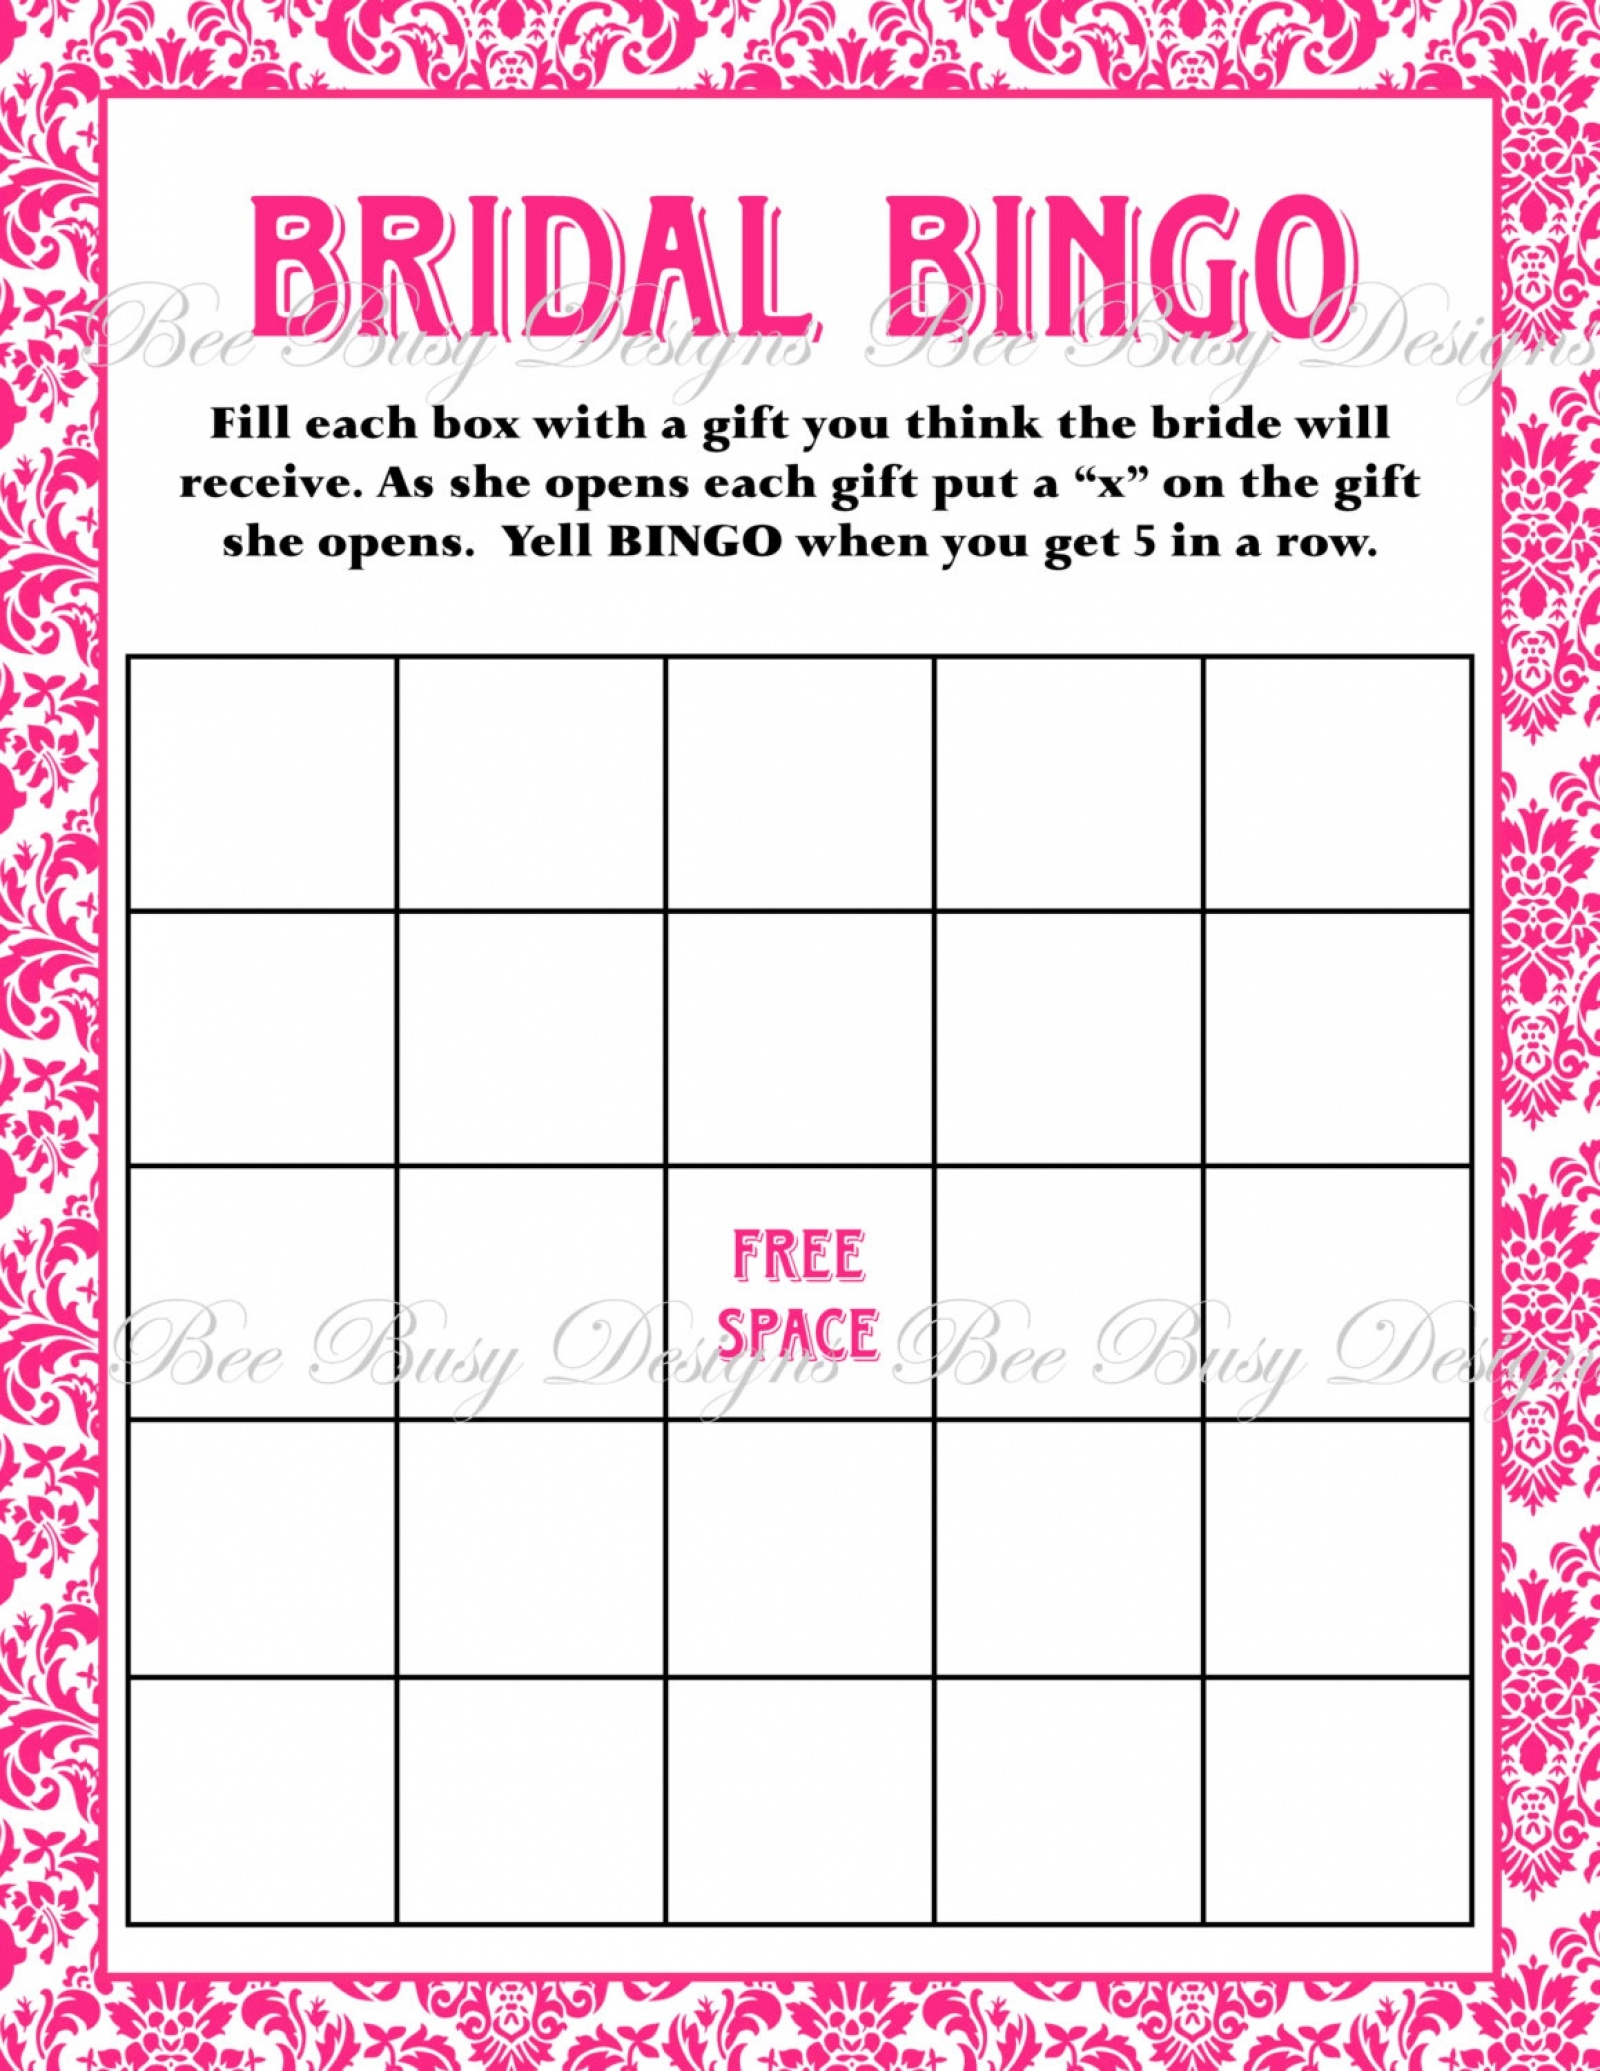 Printable Hot Pink Damask Bridal Shower Bingo Game Instant Download - Free Printable Bridal Shower Blank Bingo Games